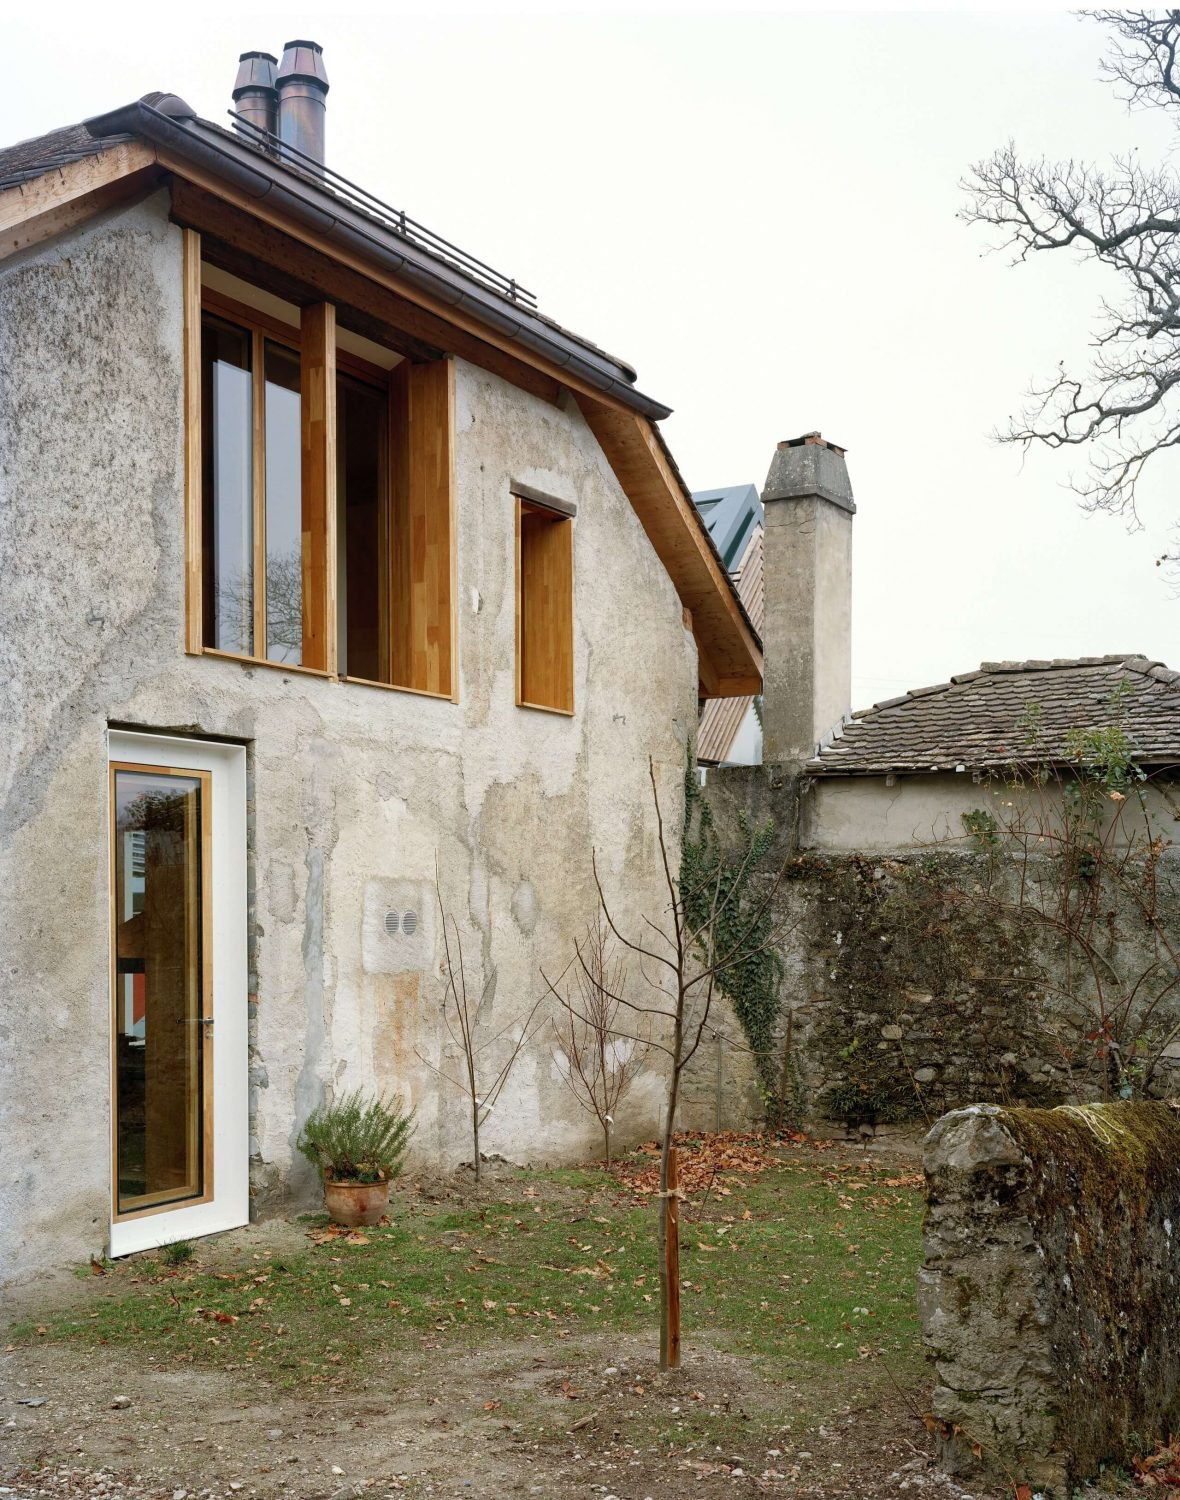 Two Houses in Chigny by dieterdietz.org